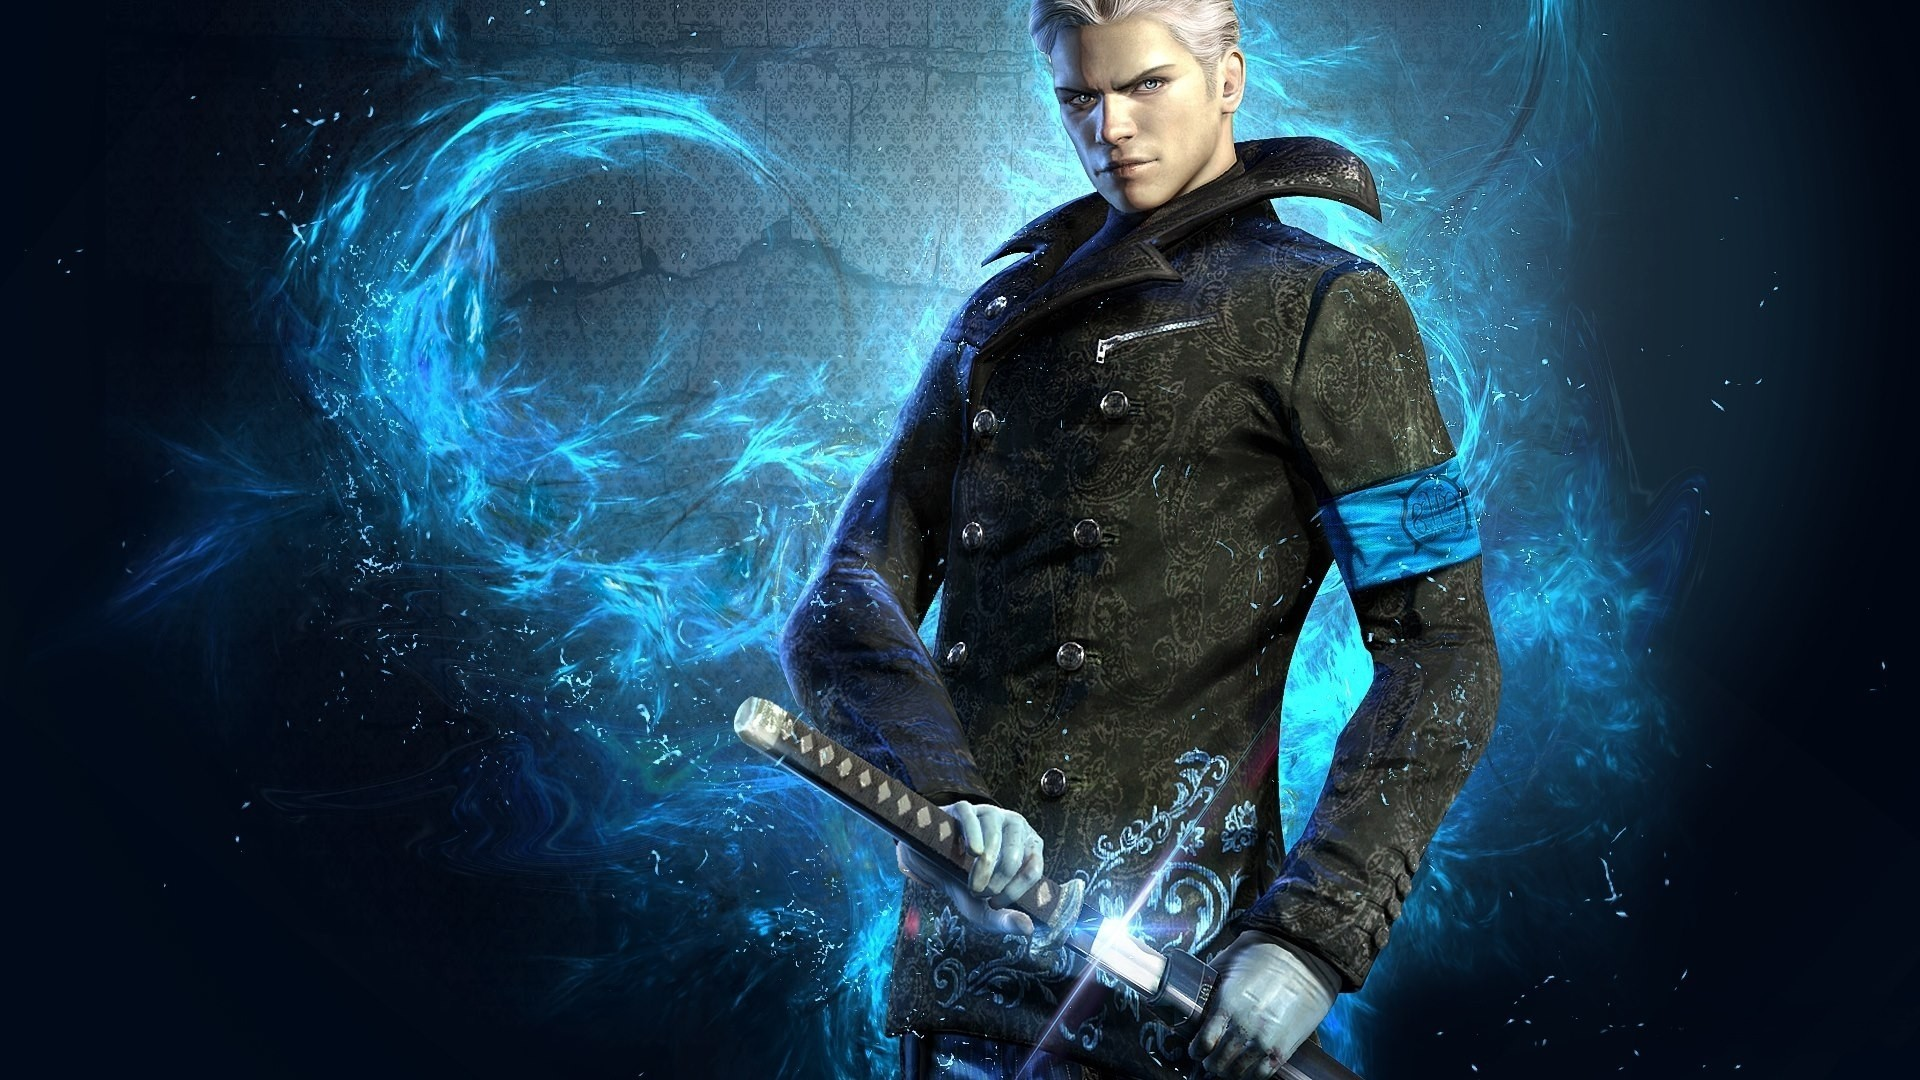 Blue, Blue Eyes, Devil May Cry, Devil May Cry 5, Dmc, - Hd Devil May Cry 5 , HD Wallpaper & Backgrounds